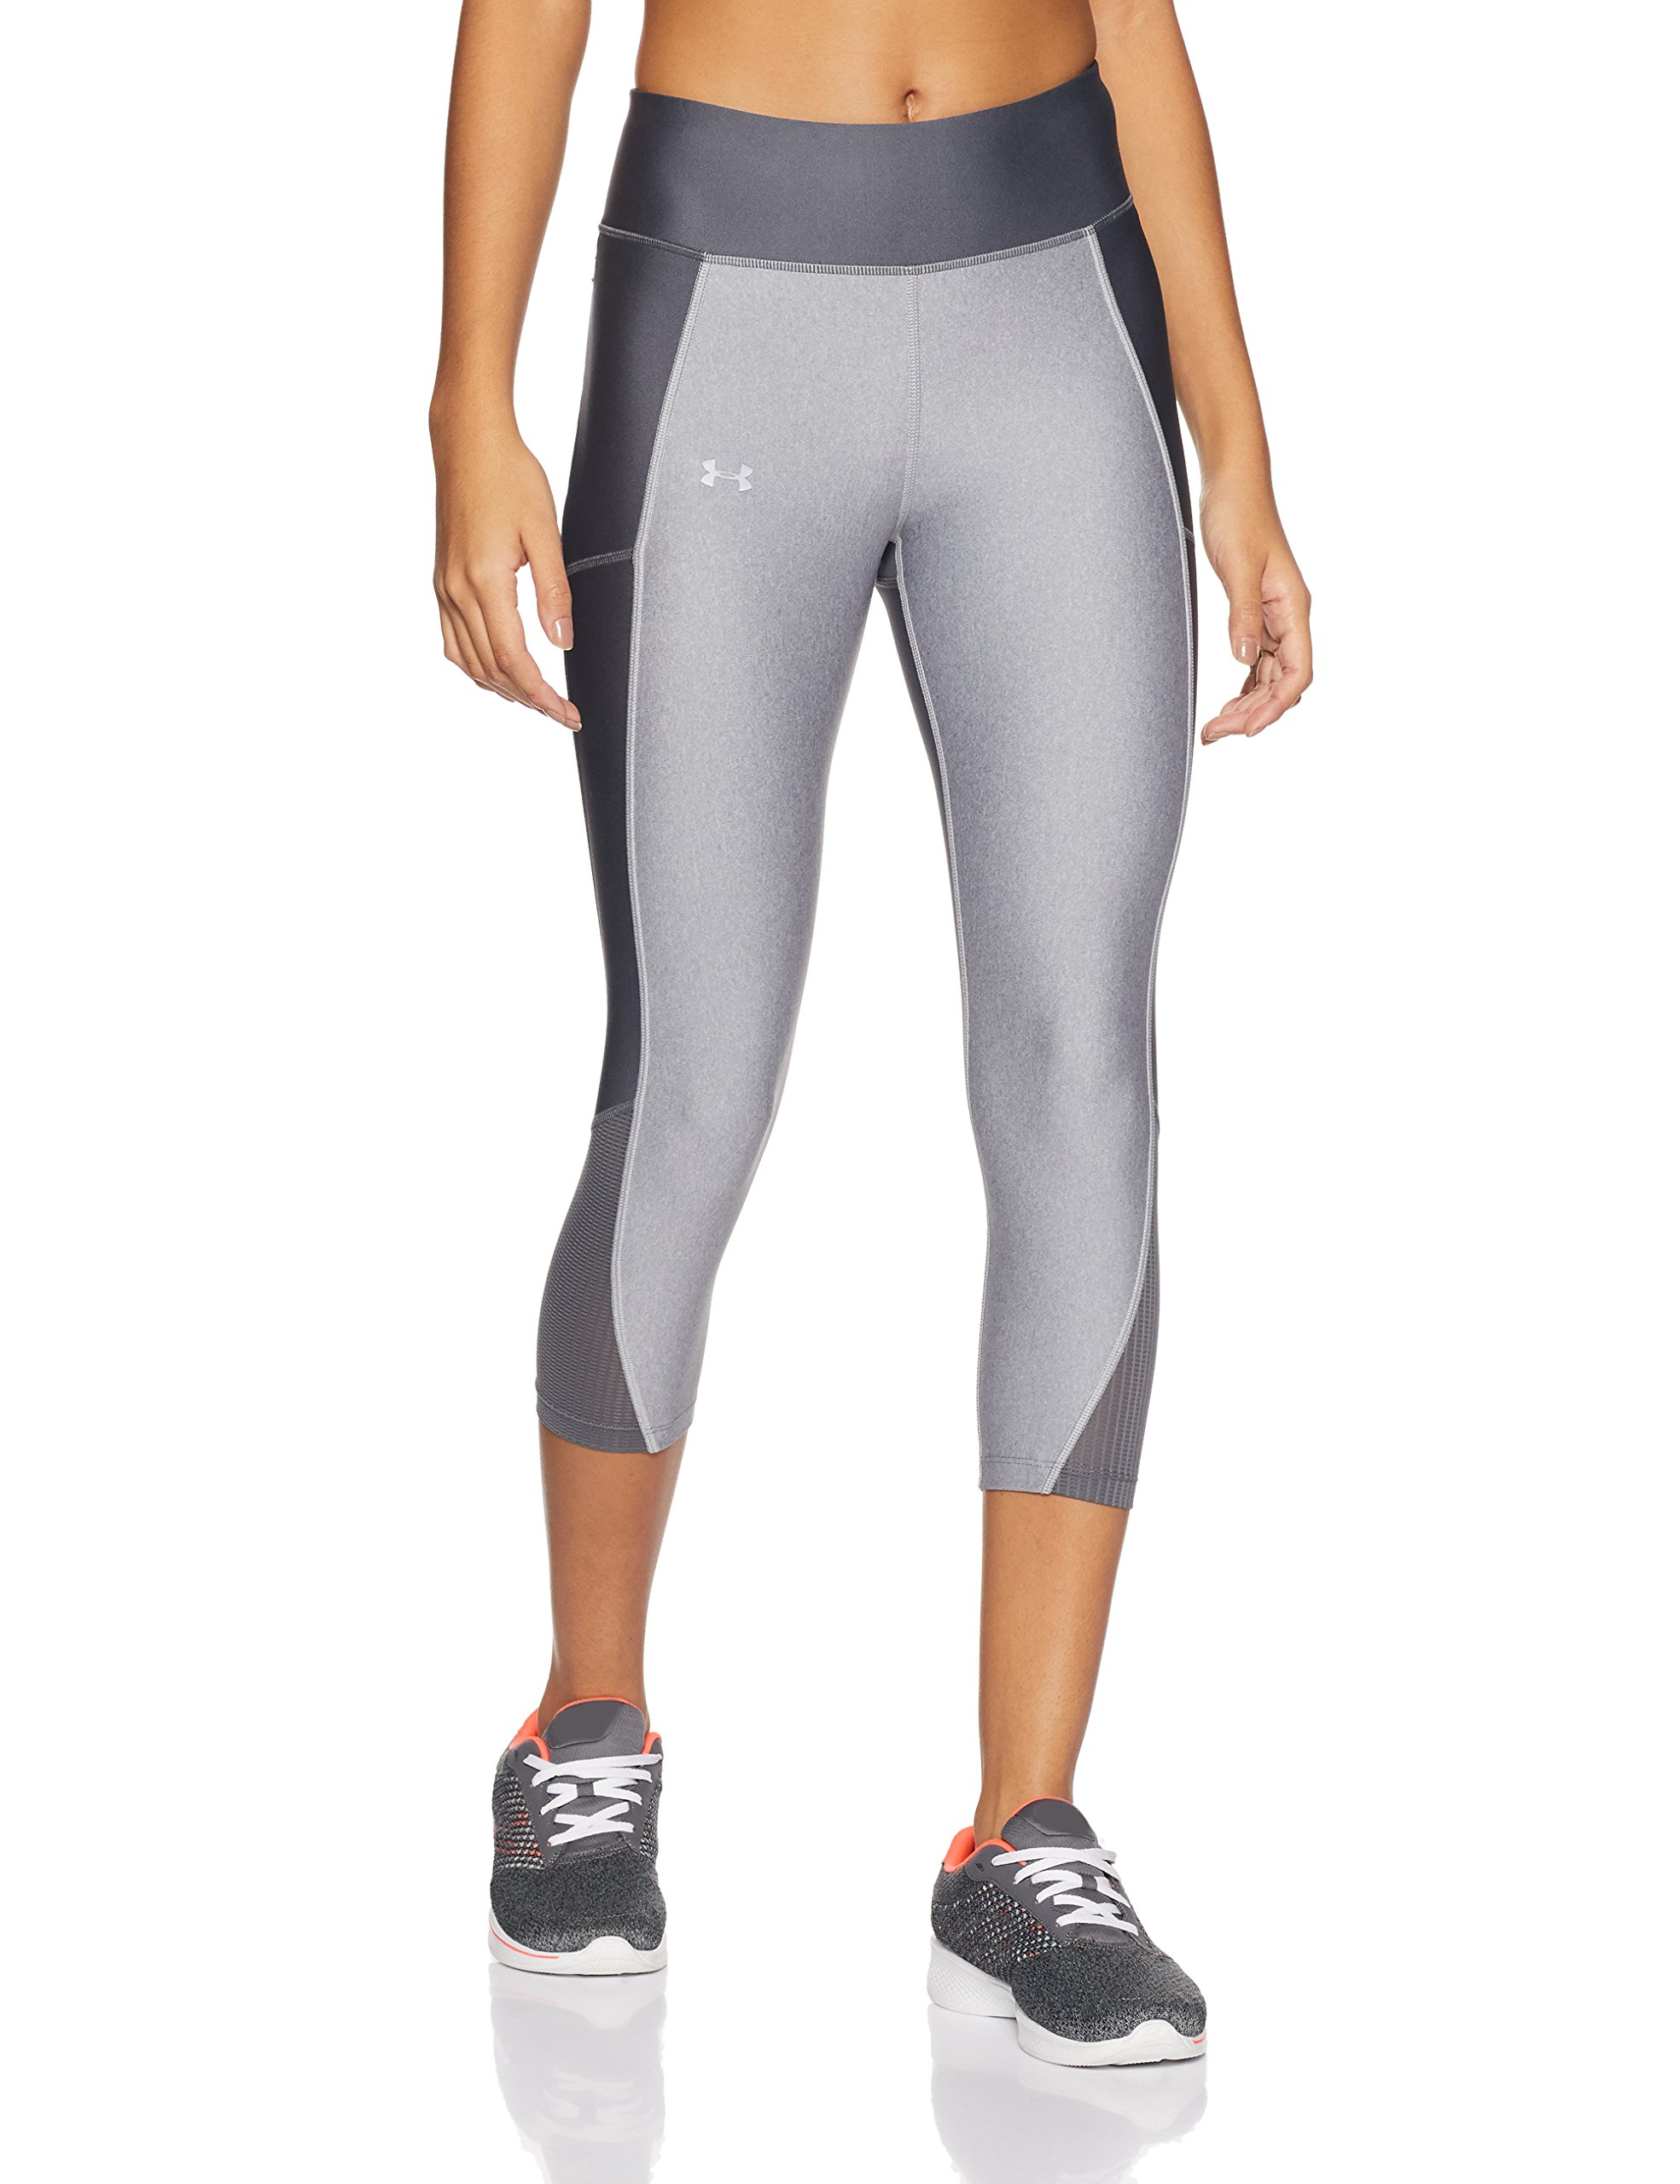 Under Armour Women's Fly-By Capri,True Gray Heather (025)/Reflective, X-Small